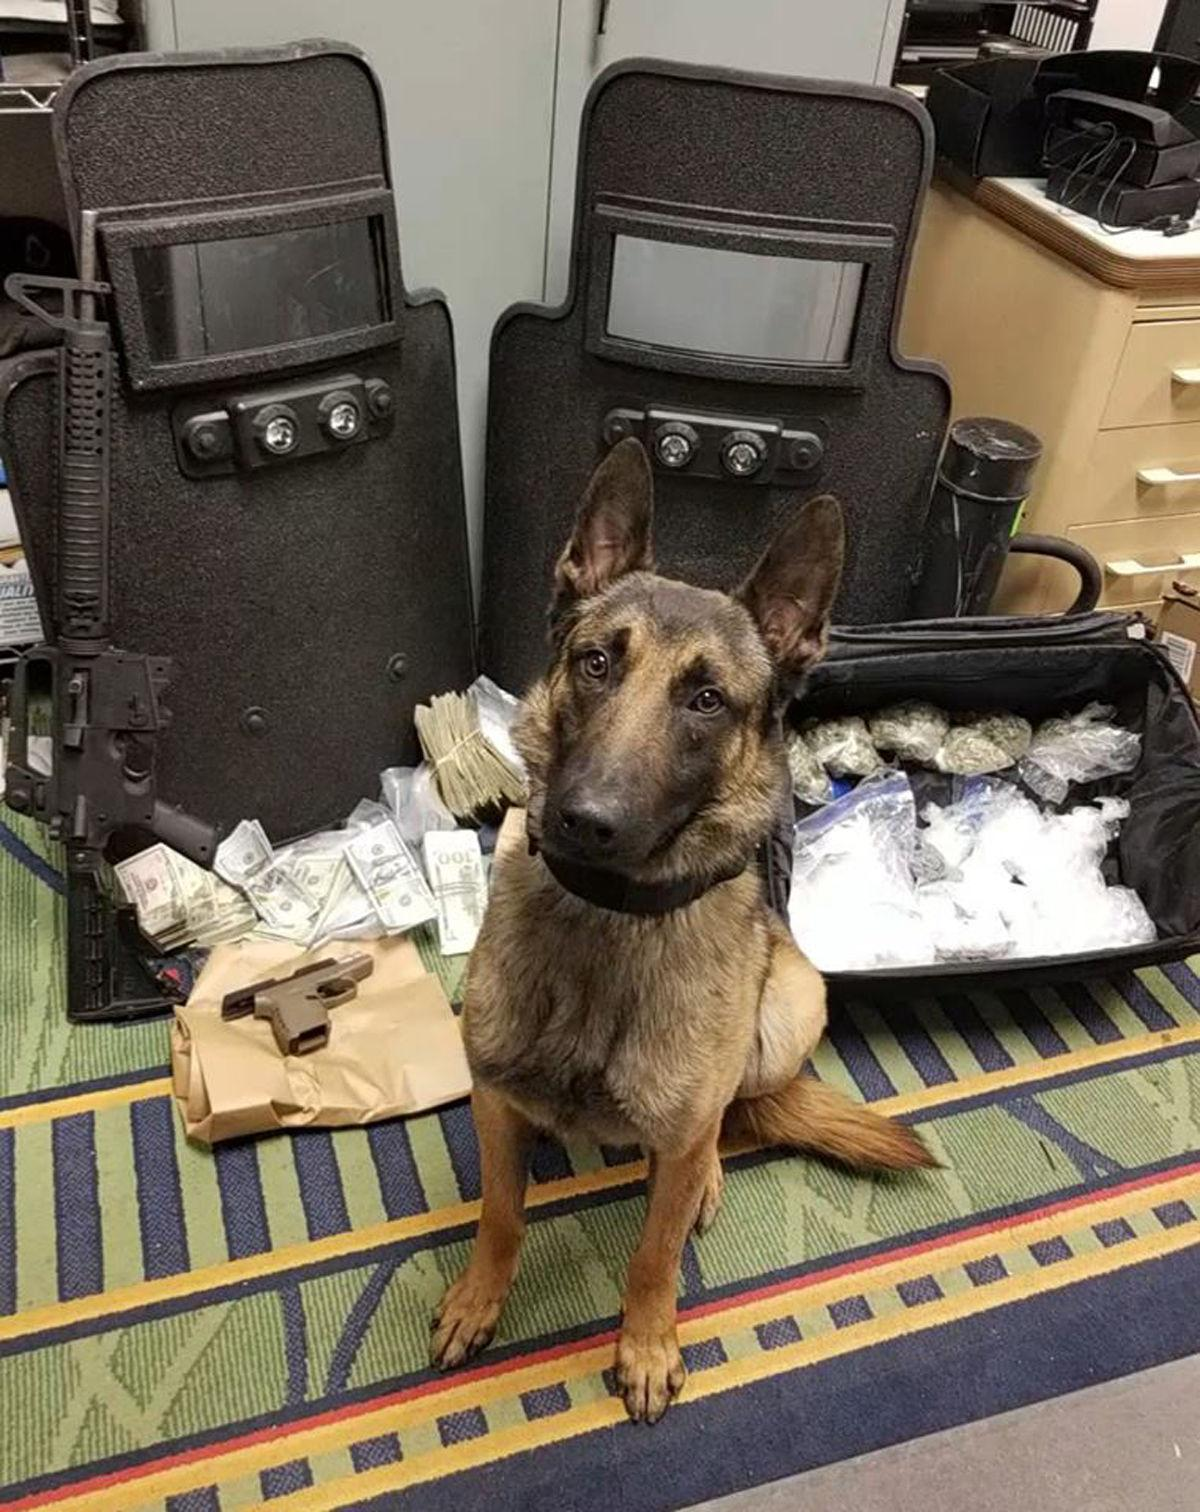 Nearly 2,000 grams of meth, other drugs seized in Fairmont drug bust